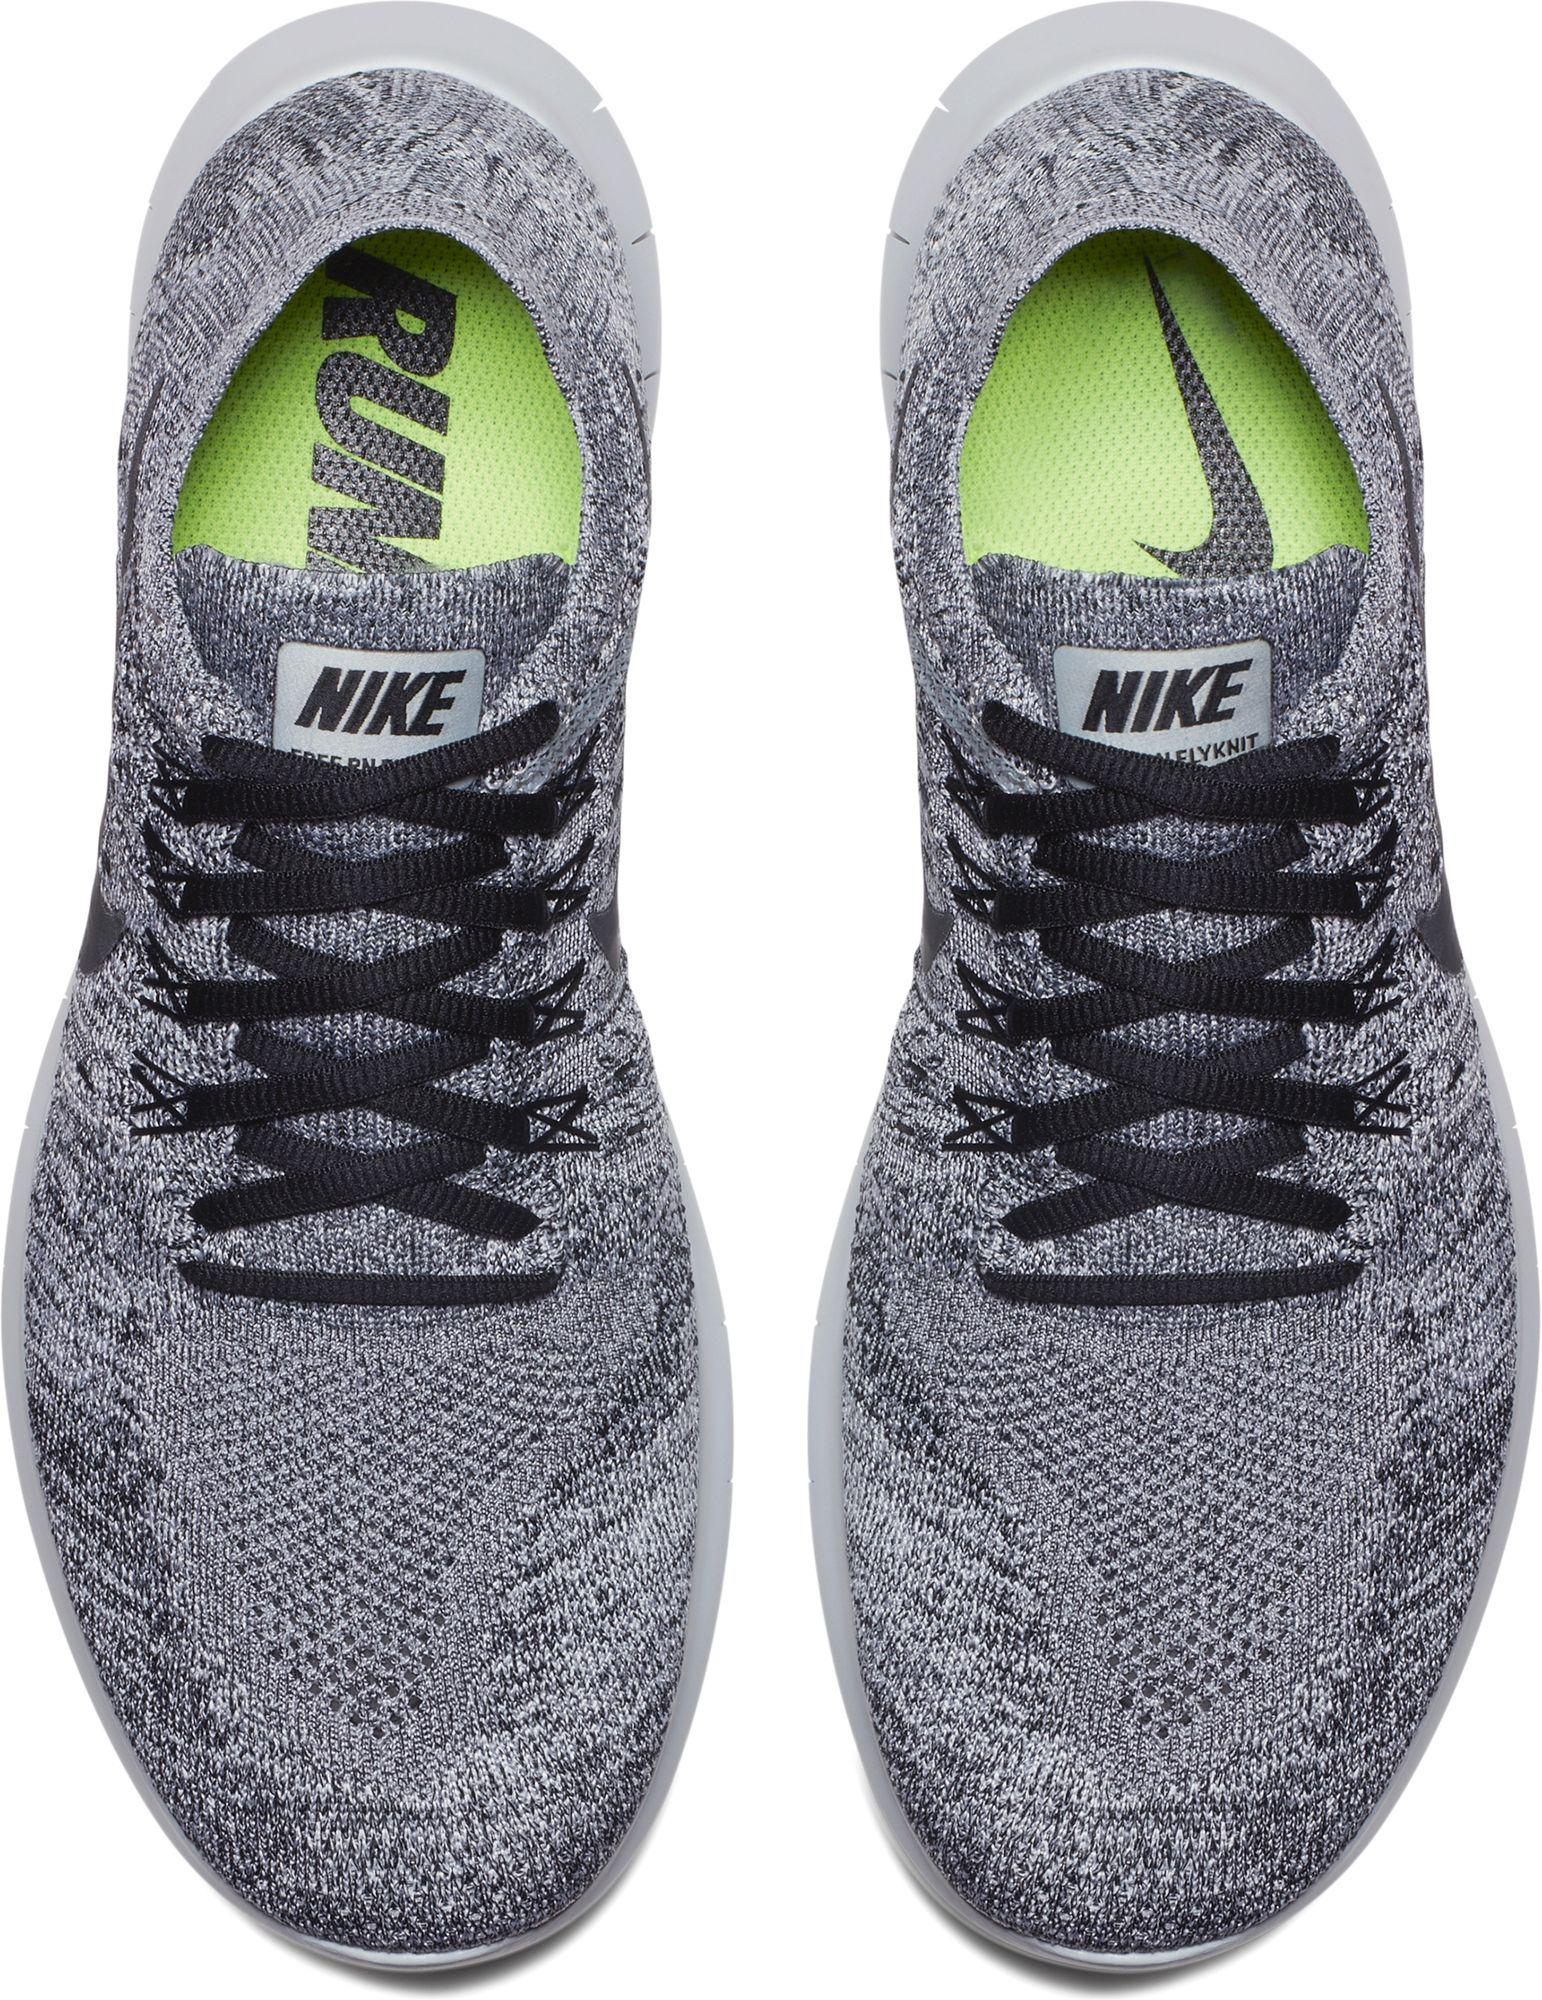 new concept db6a6 fbc6d Nike - Gray Free Rn Flyknit 2017 Running Shoes for Men - Lyst